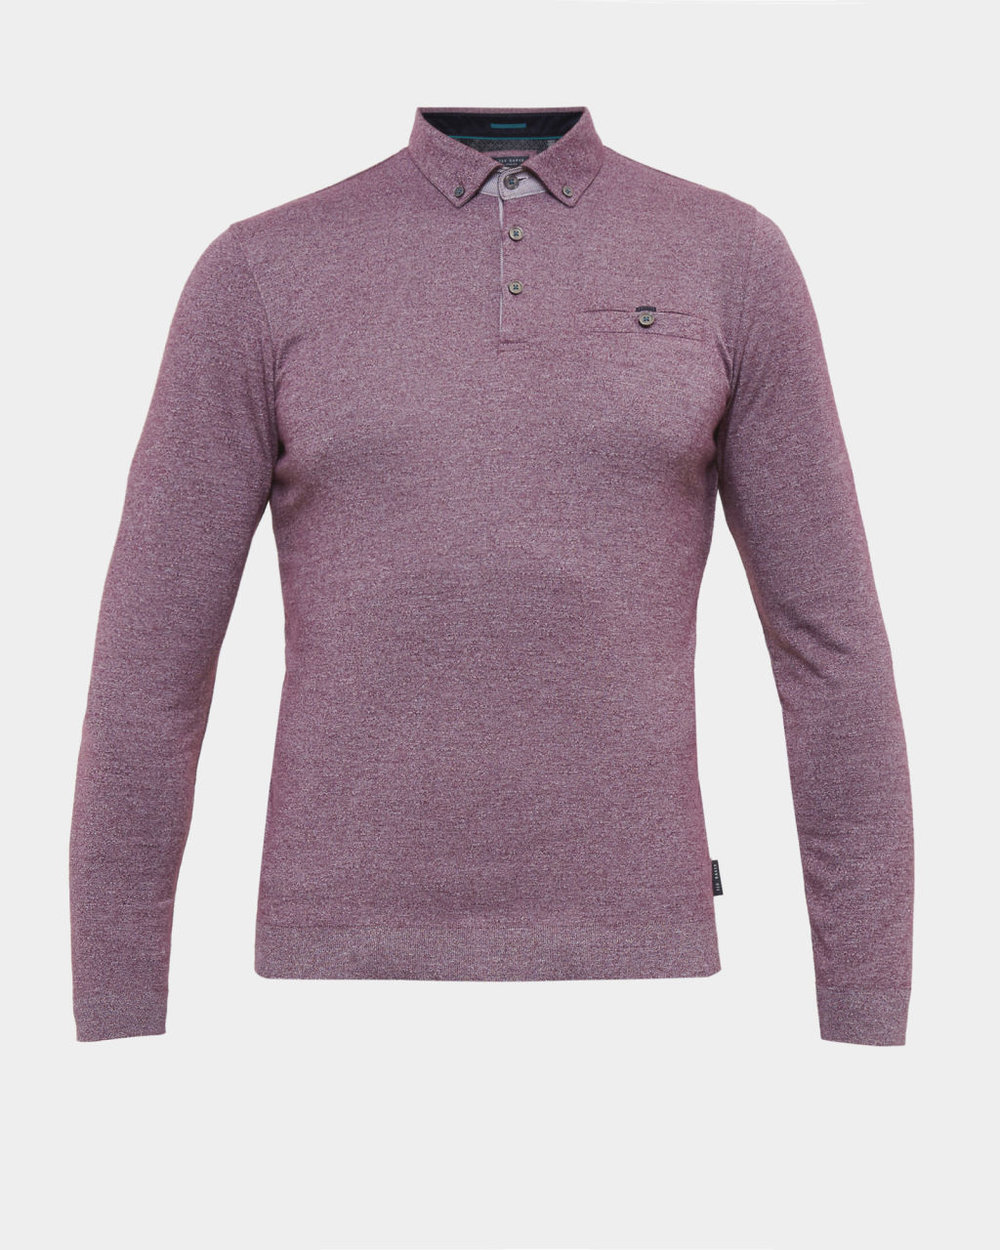 Ted Baker Long Sleeve Polo — What is a Gentleman 86b9988a61ea